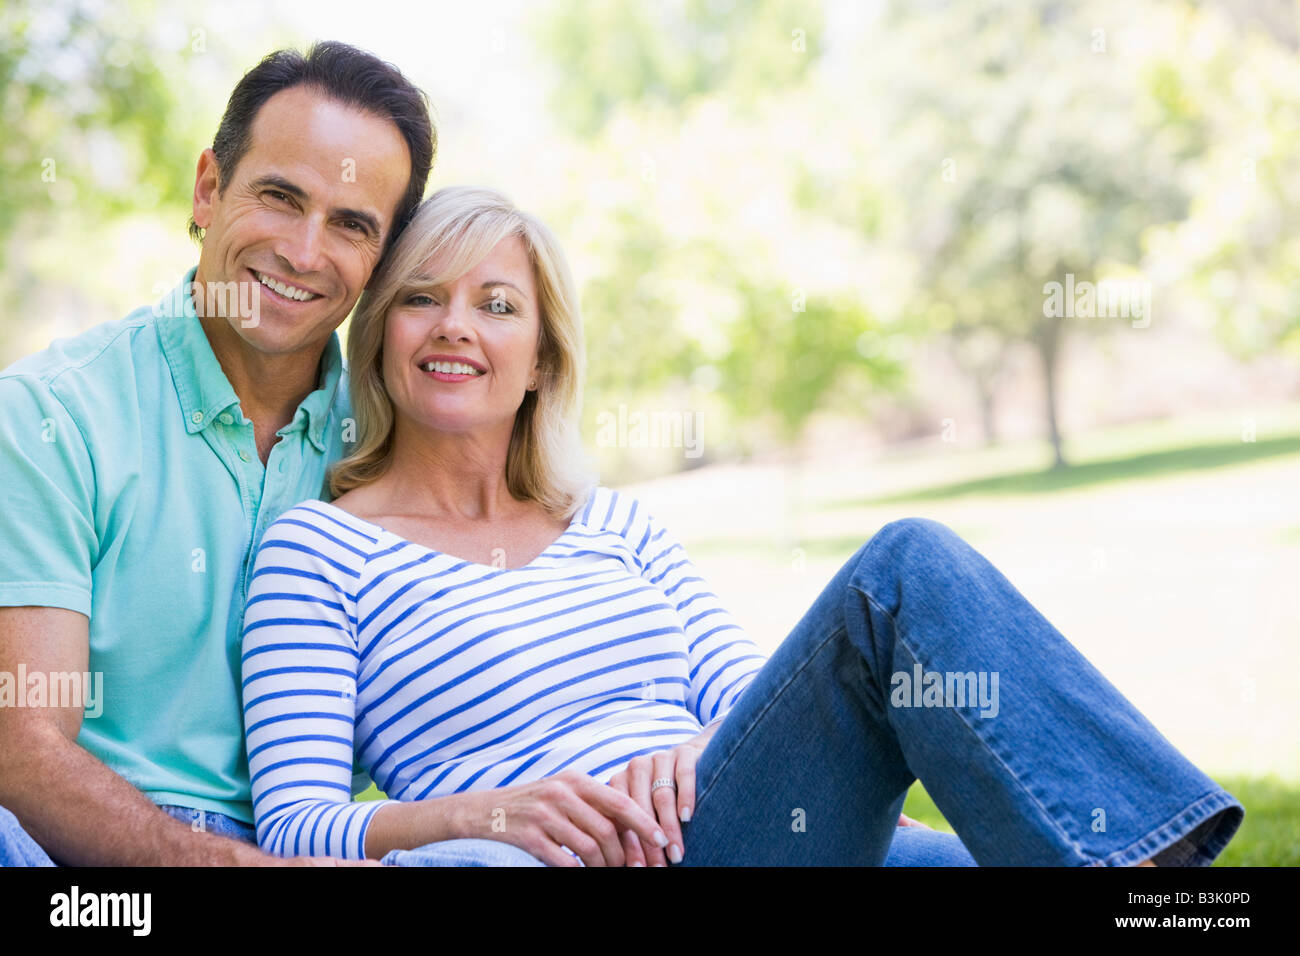 Couple relaxing outdoors in park smiling - Stock Image